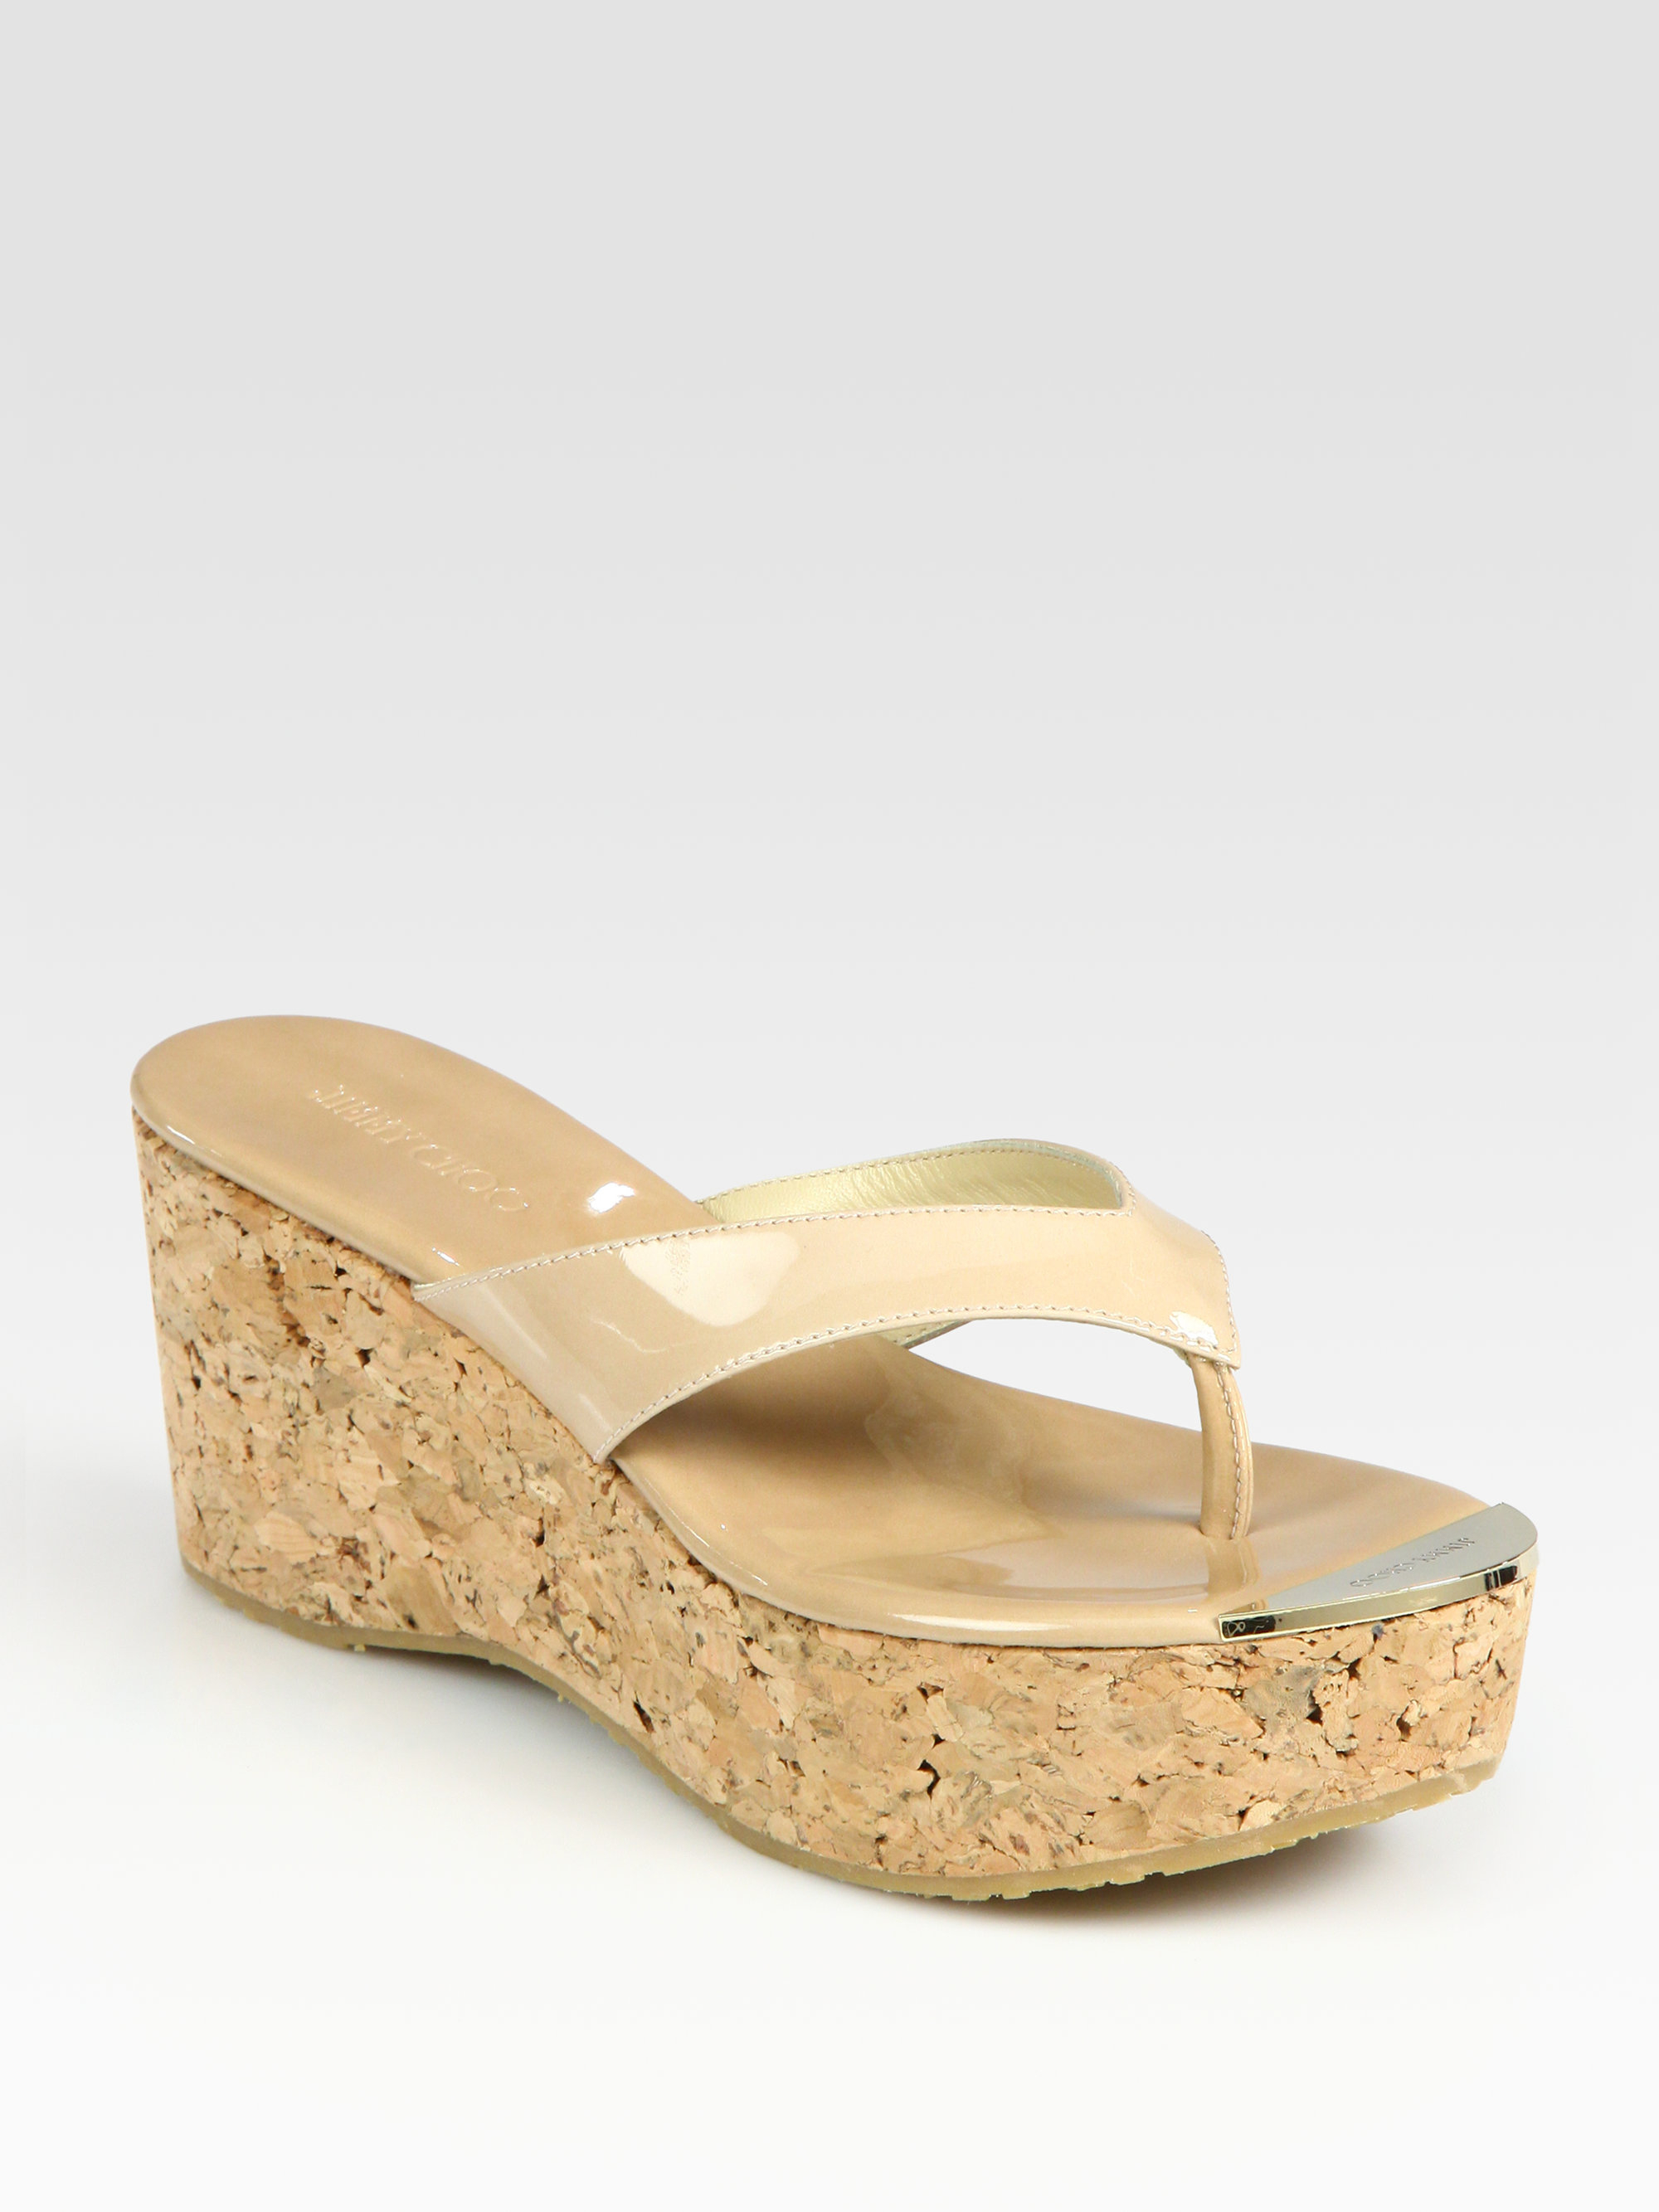 f7c2af55c082d ... shop lyst jimmy choo patent leather wedge sandals in natural 1c967 3b2b5